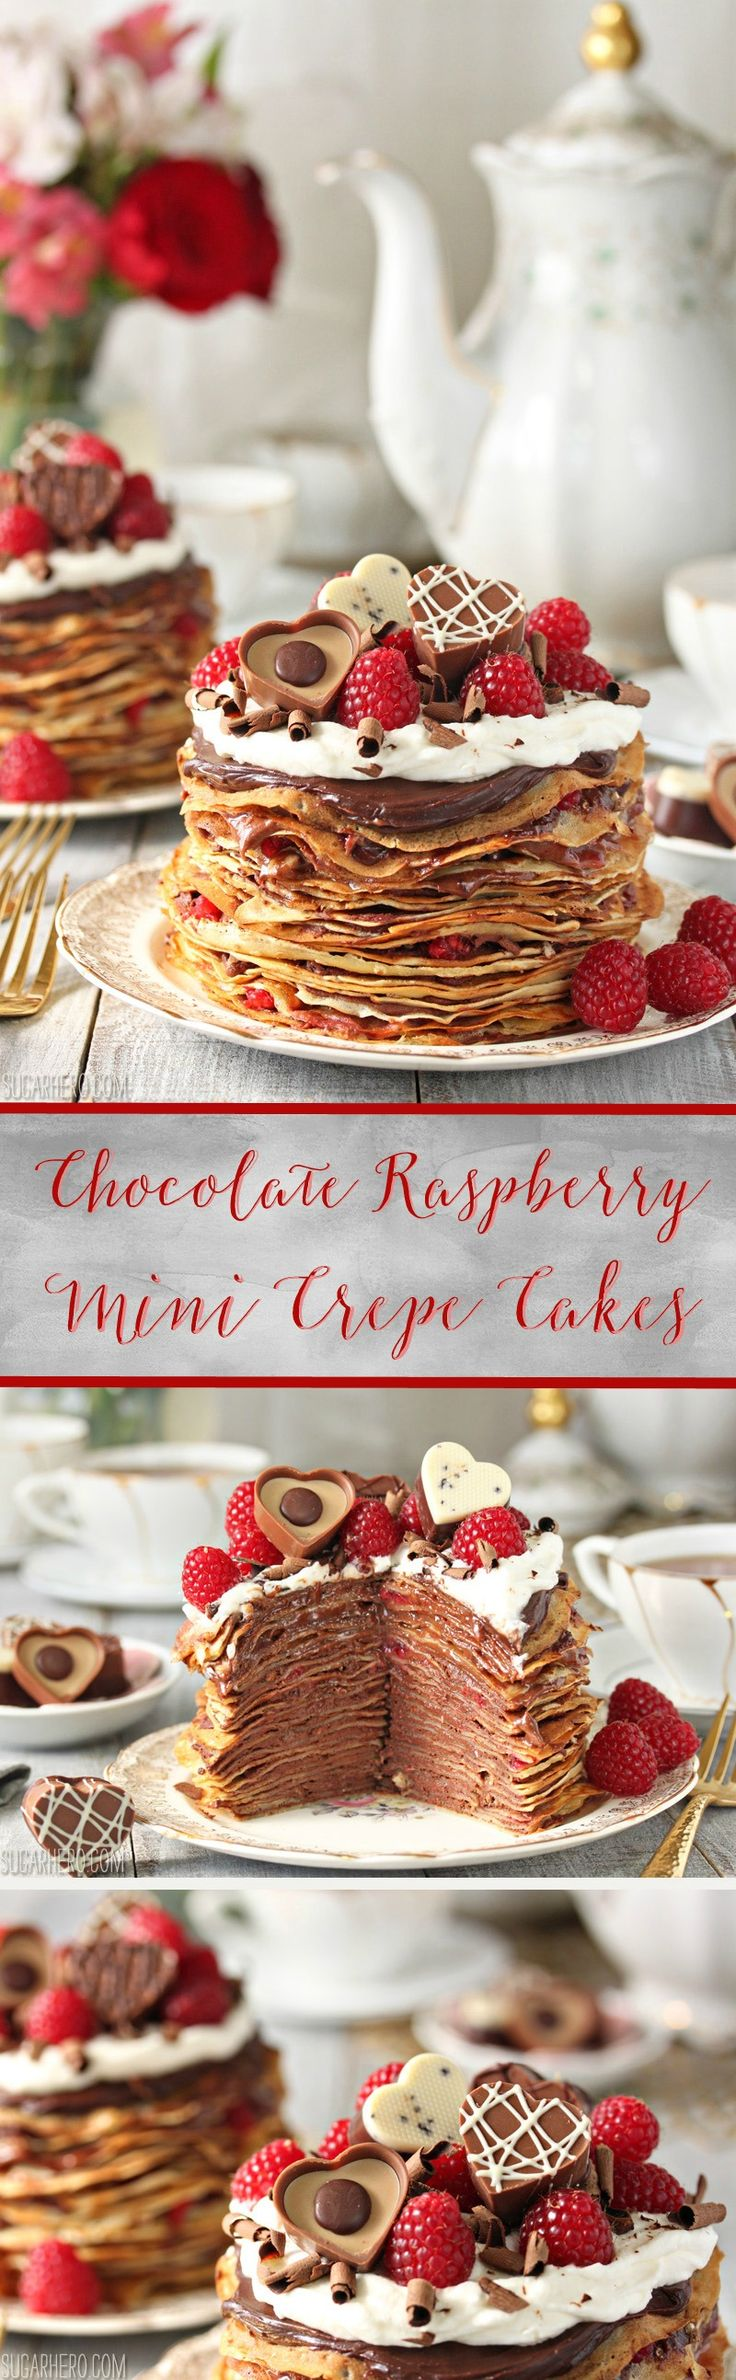 Chocolate Rasperry Mini Crepe Cakes - mini cakes with twenty-five layers of crepes and a chocolate-raspberry whipped ganache. | From SugarHero.com